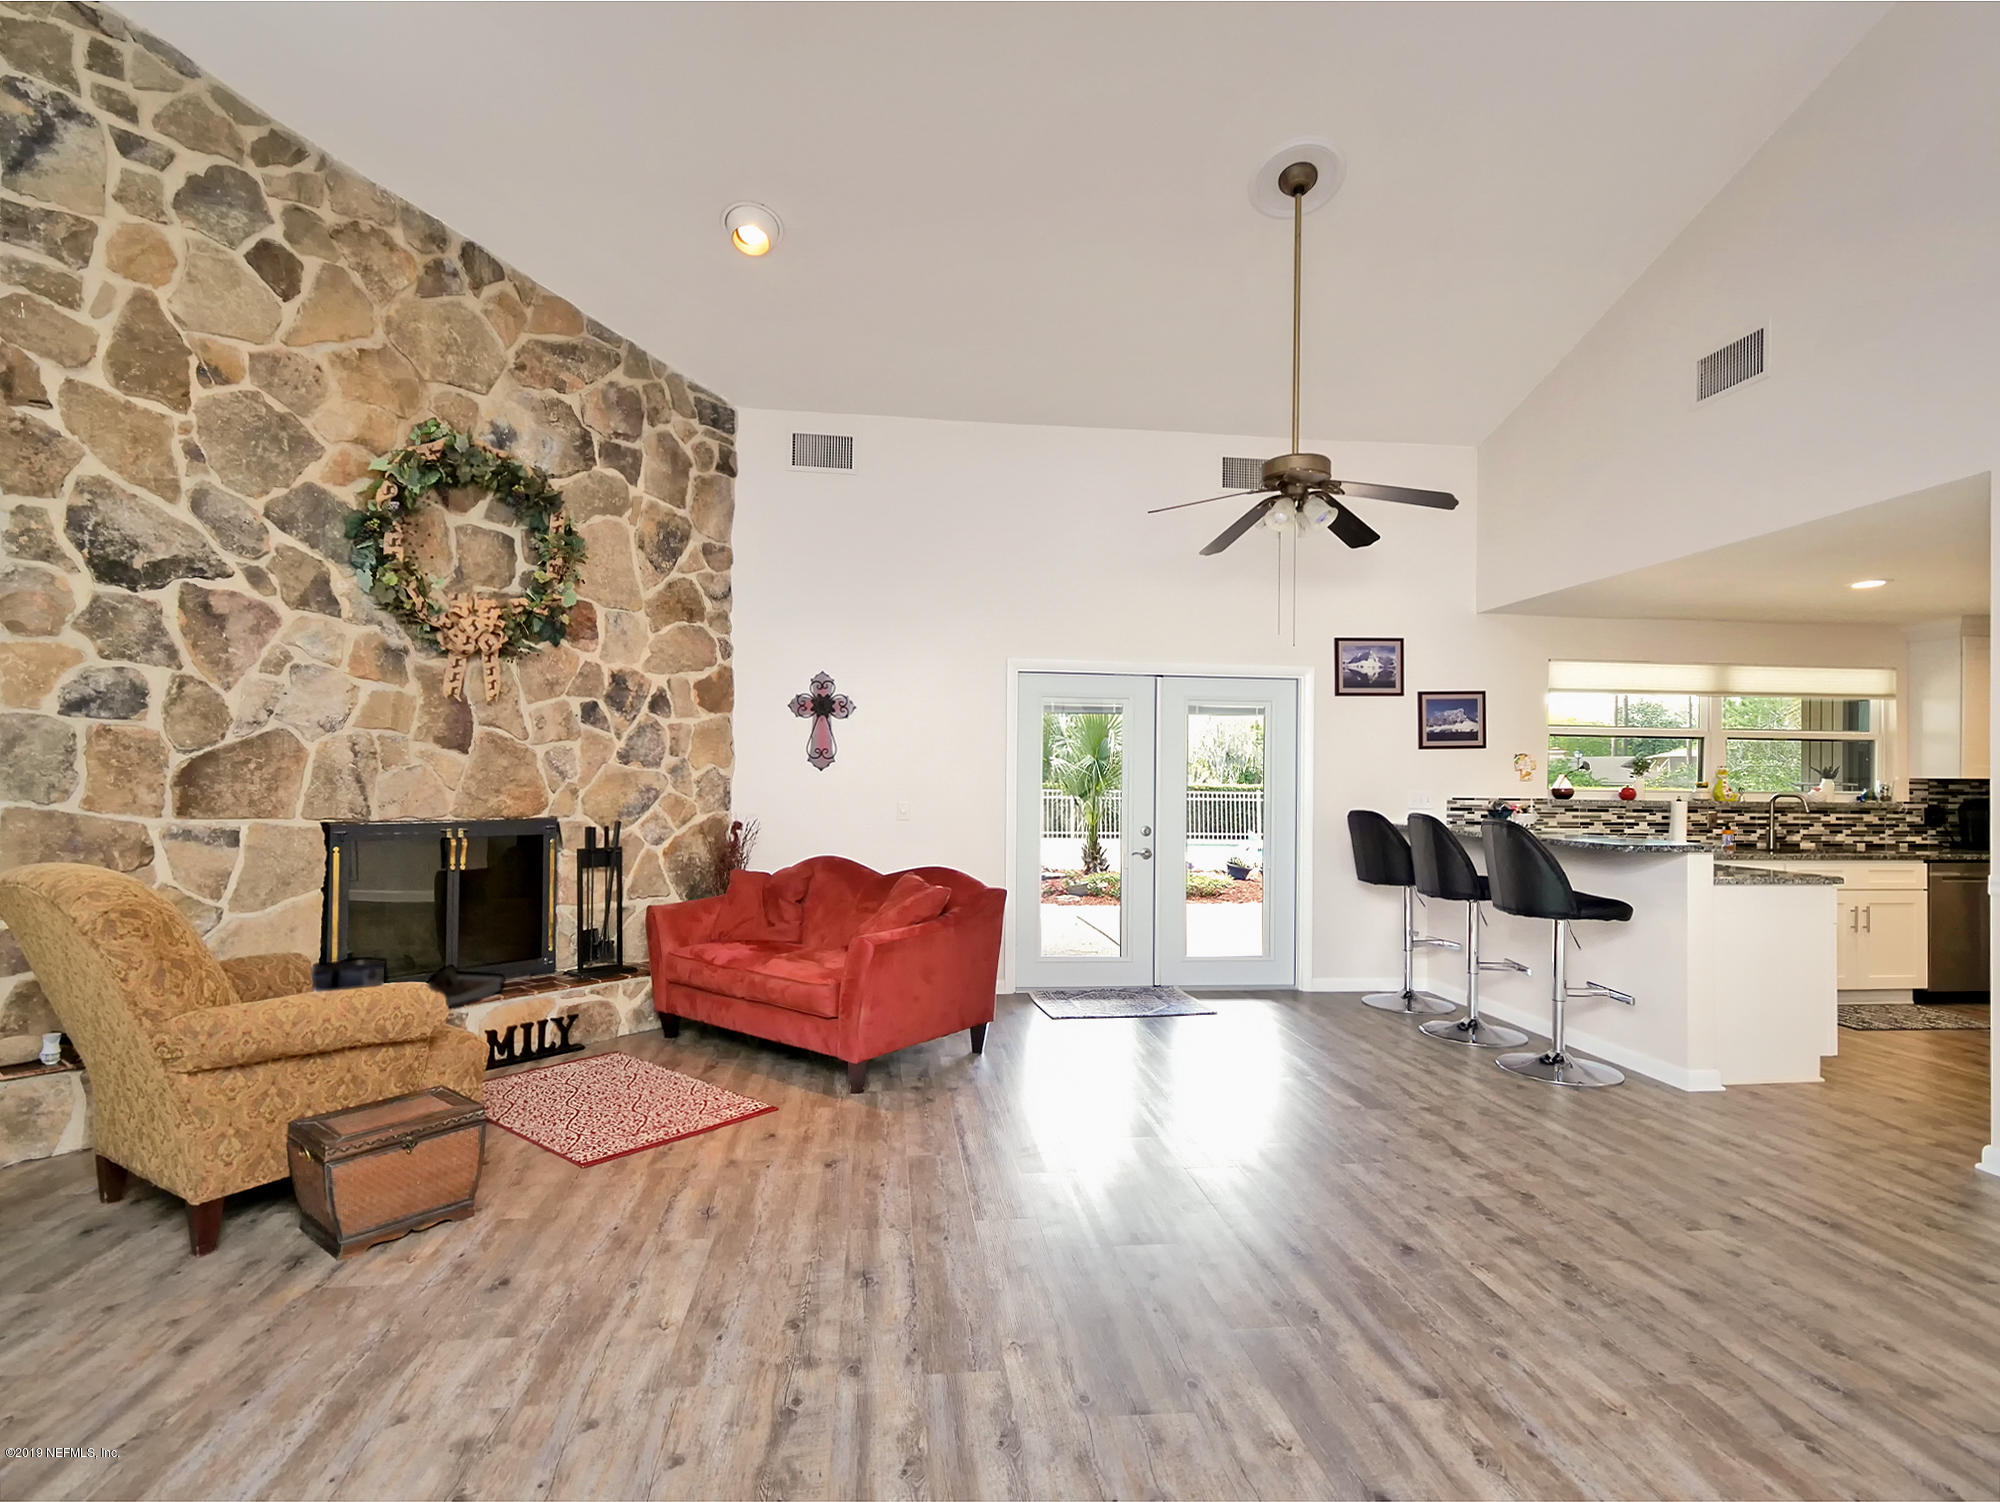 8018 HUNTERS GROVE, JACKSONVILLE, FLORIDA 32256, 4 Bedrooms Bedrooms, ,4 BathroomsBathrooms,Residential - single family,For sale,HUNTERS GROVE,990390